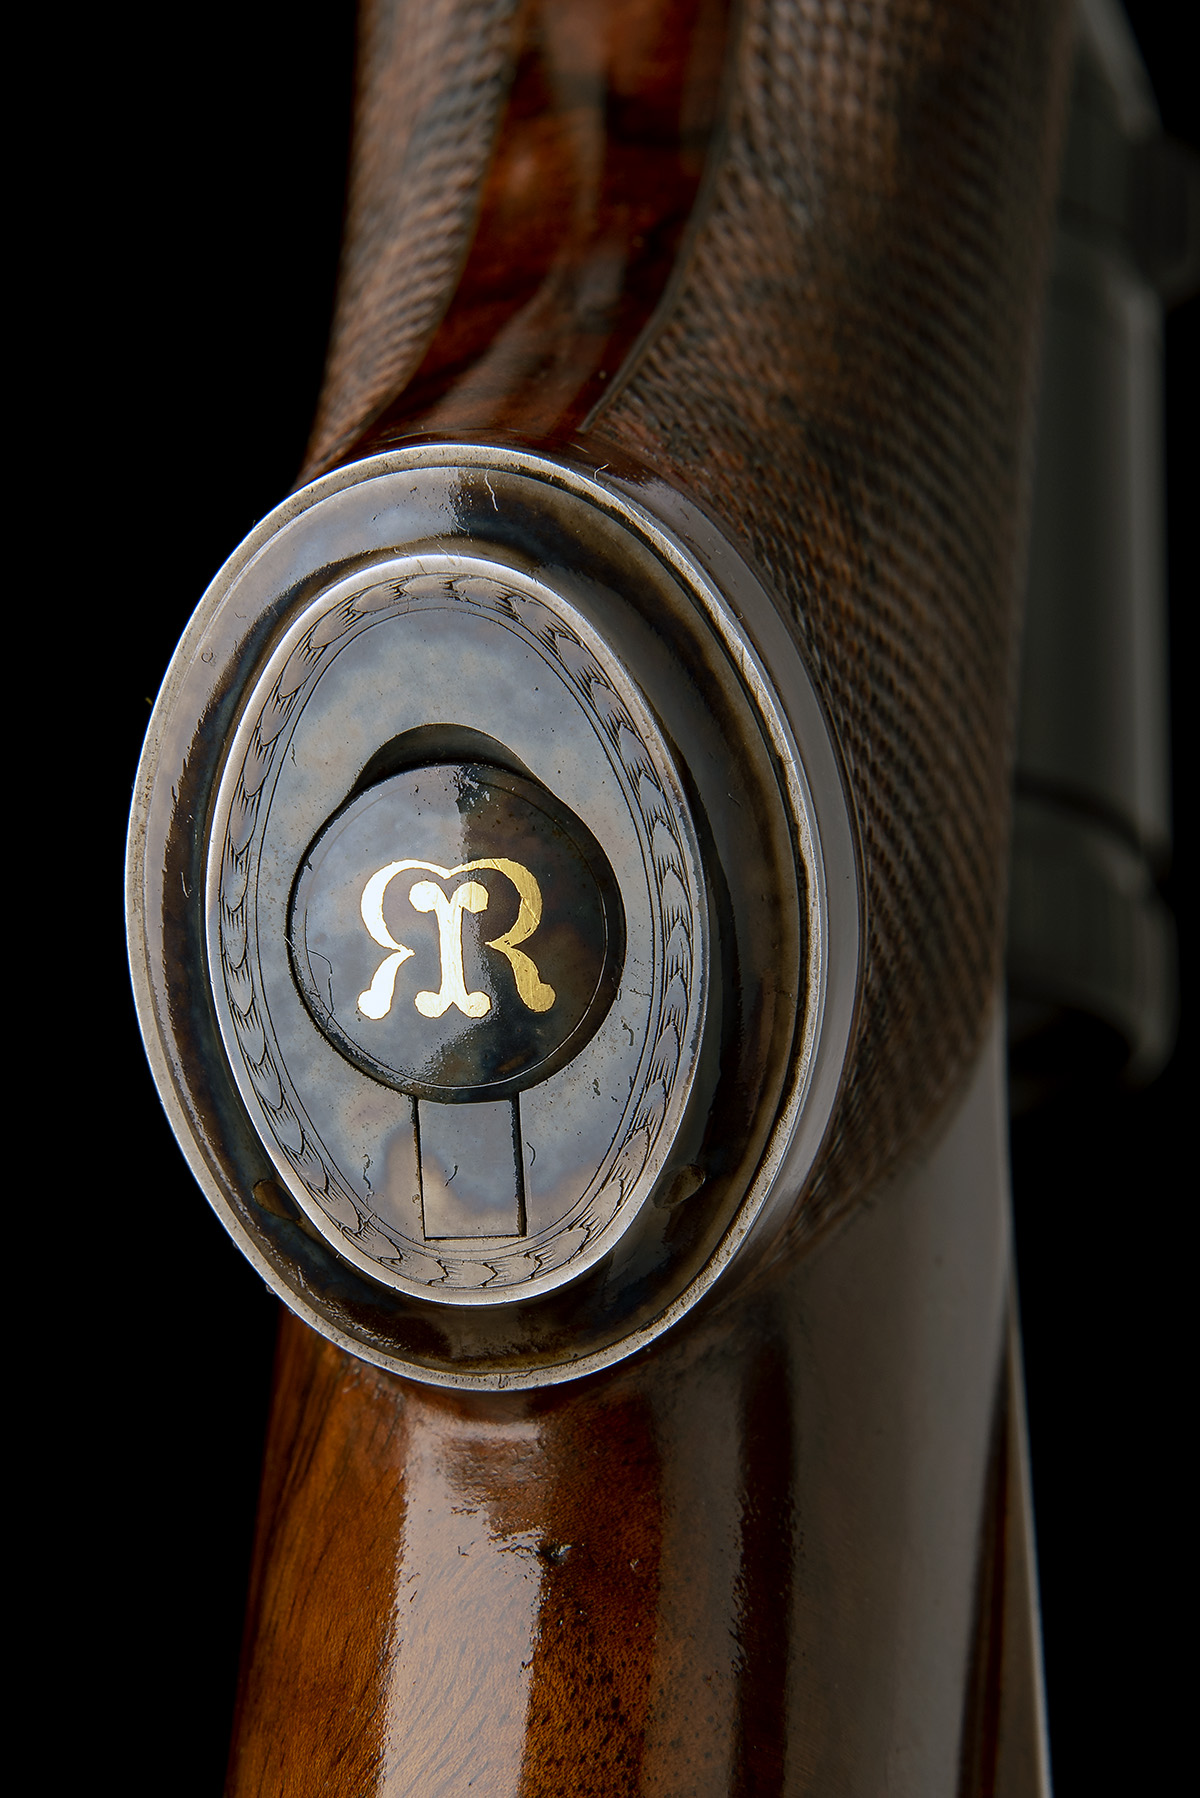 J. RIGBY & CO. A FINE, HUNT-ENGRAVED .375 H&H MAGNUM BOLT-MAGAZINE SPORTING RIFLE, serial no. - Image 6 of 12